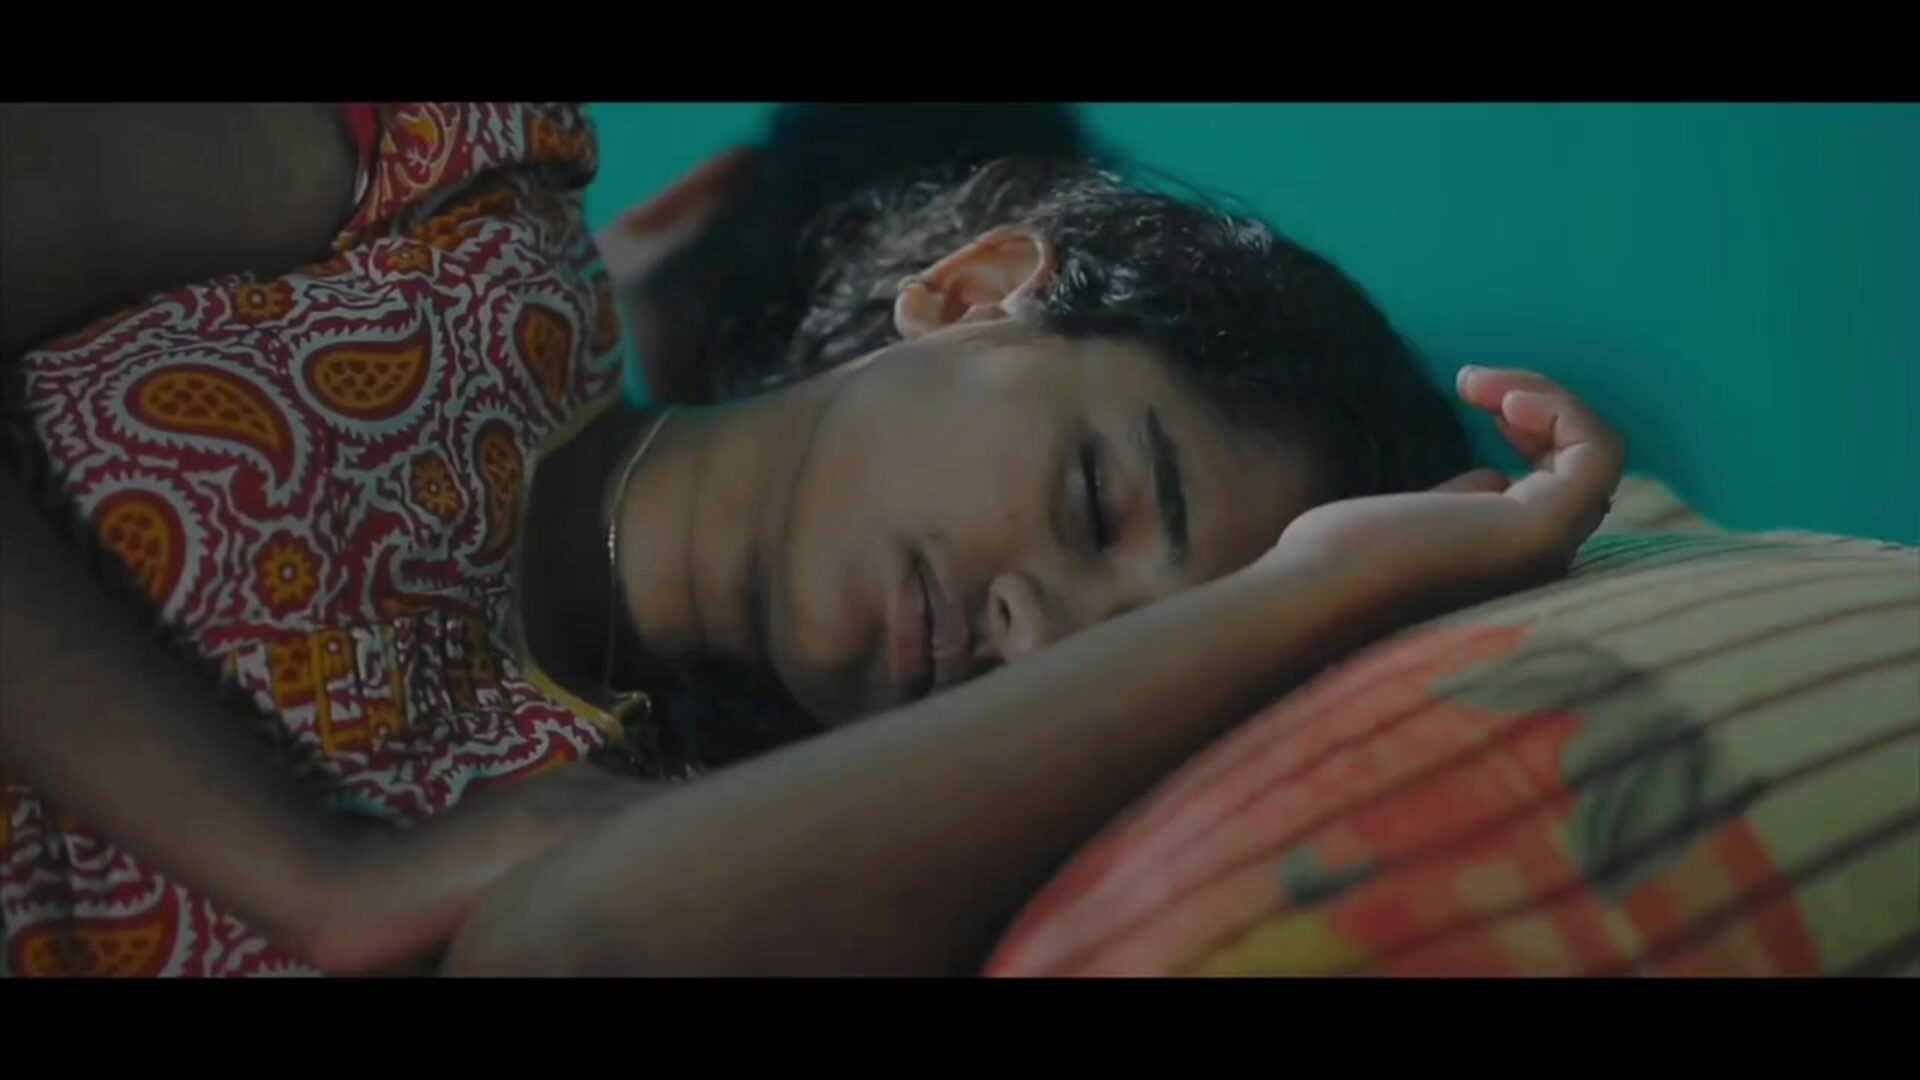 Kerala wifey affair Wife affair one more person short film